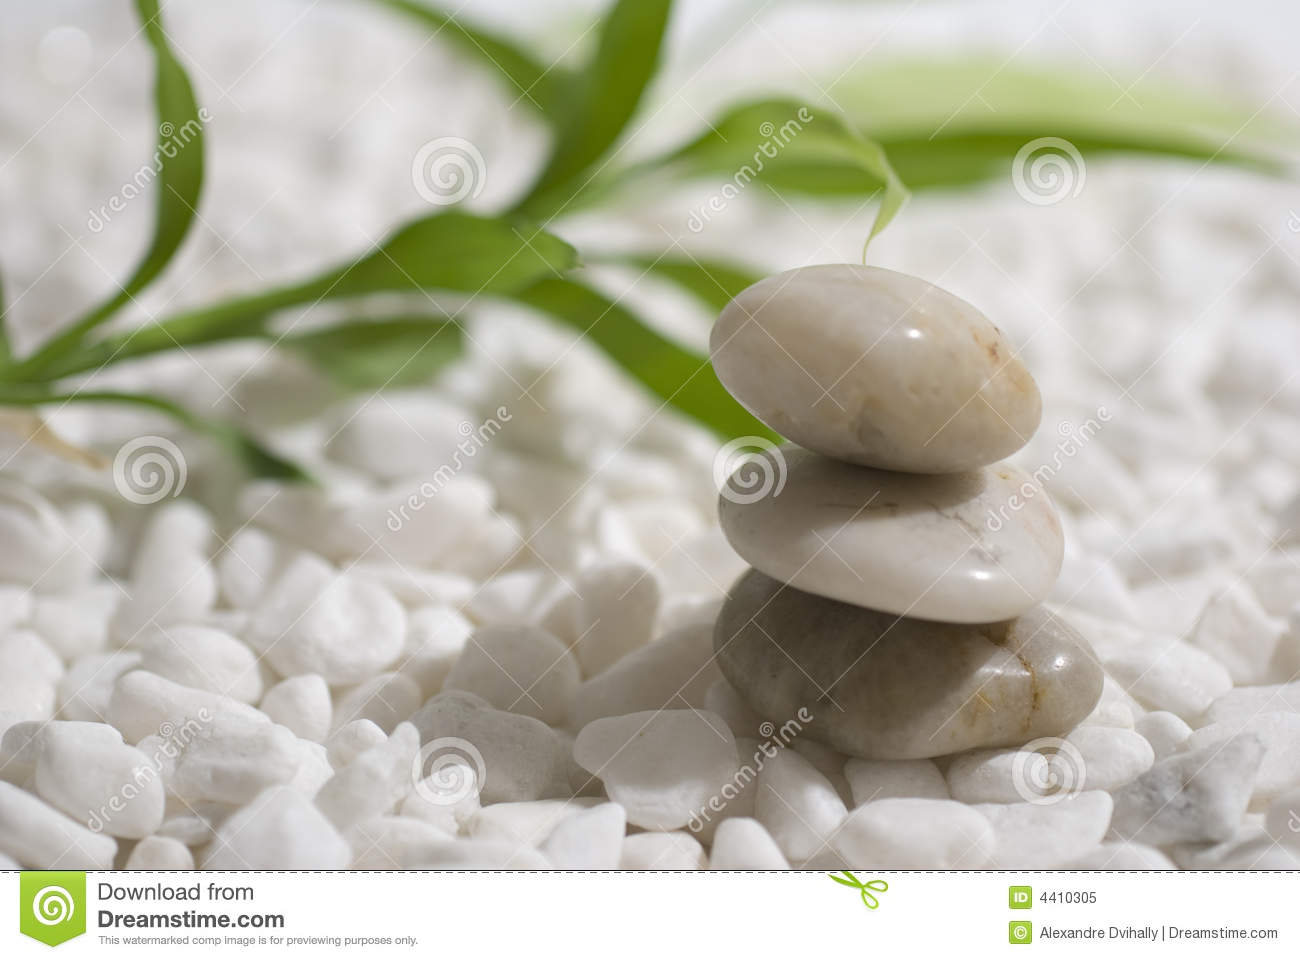 Zen Stones And Bamboo Jpg